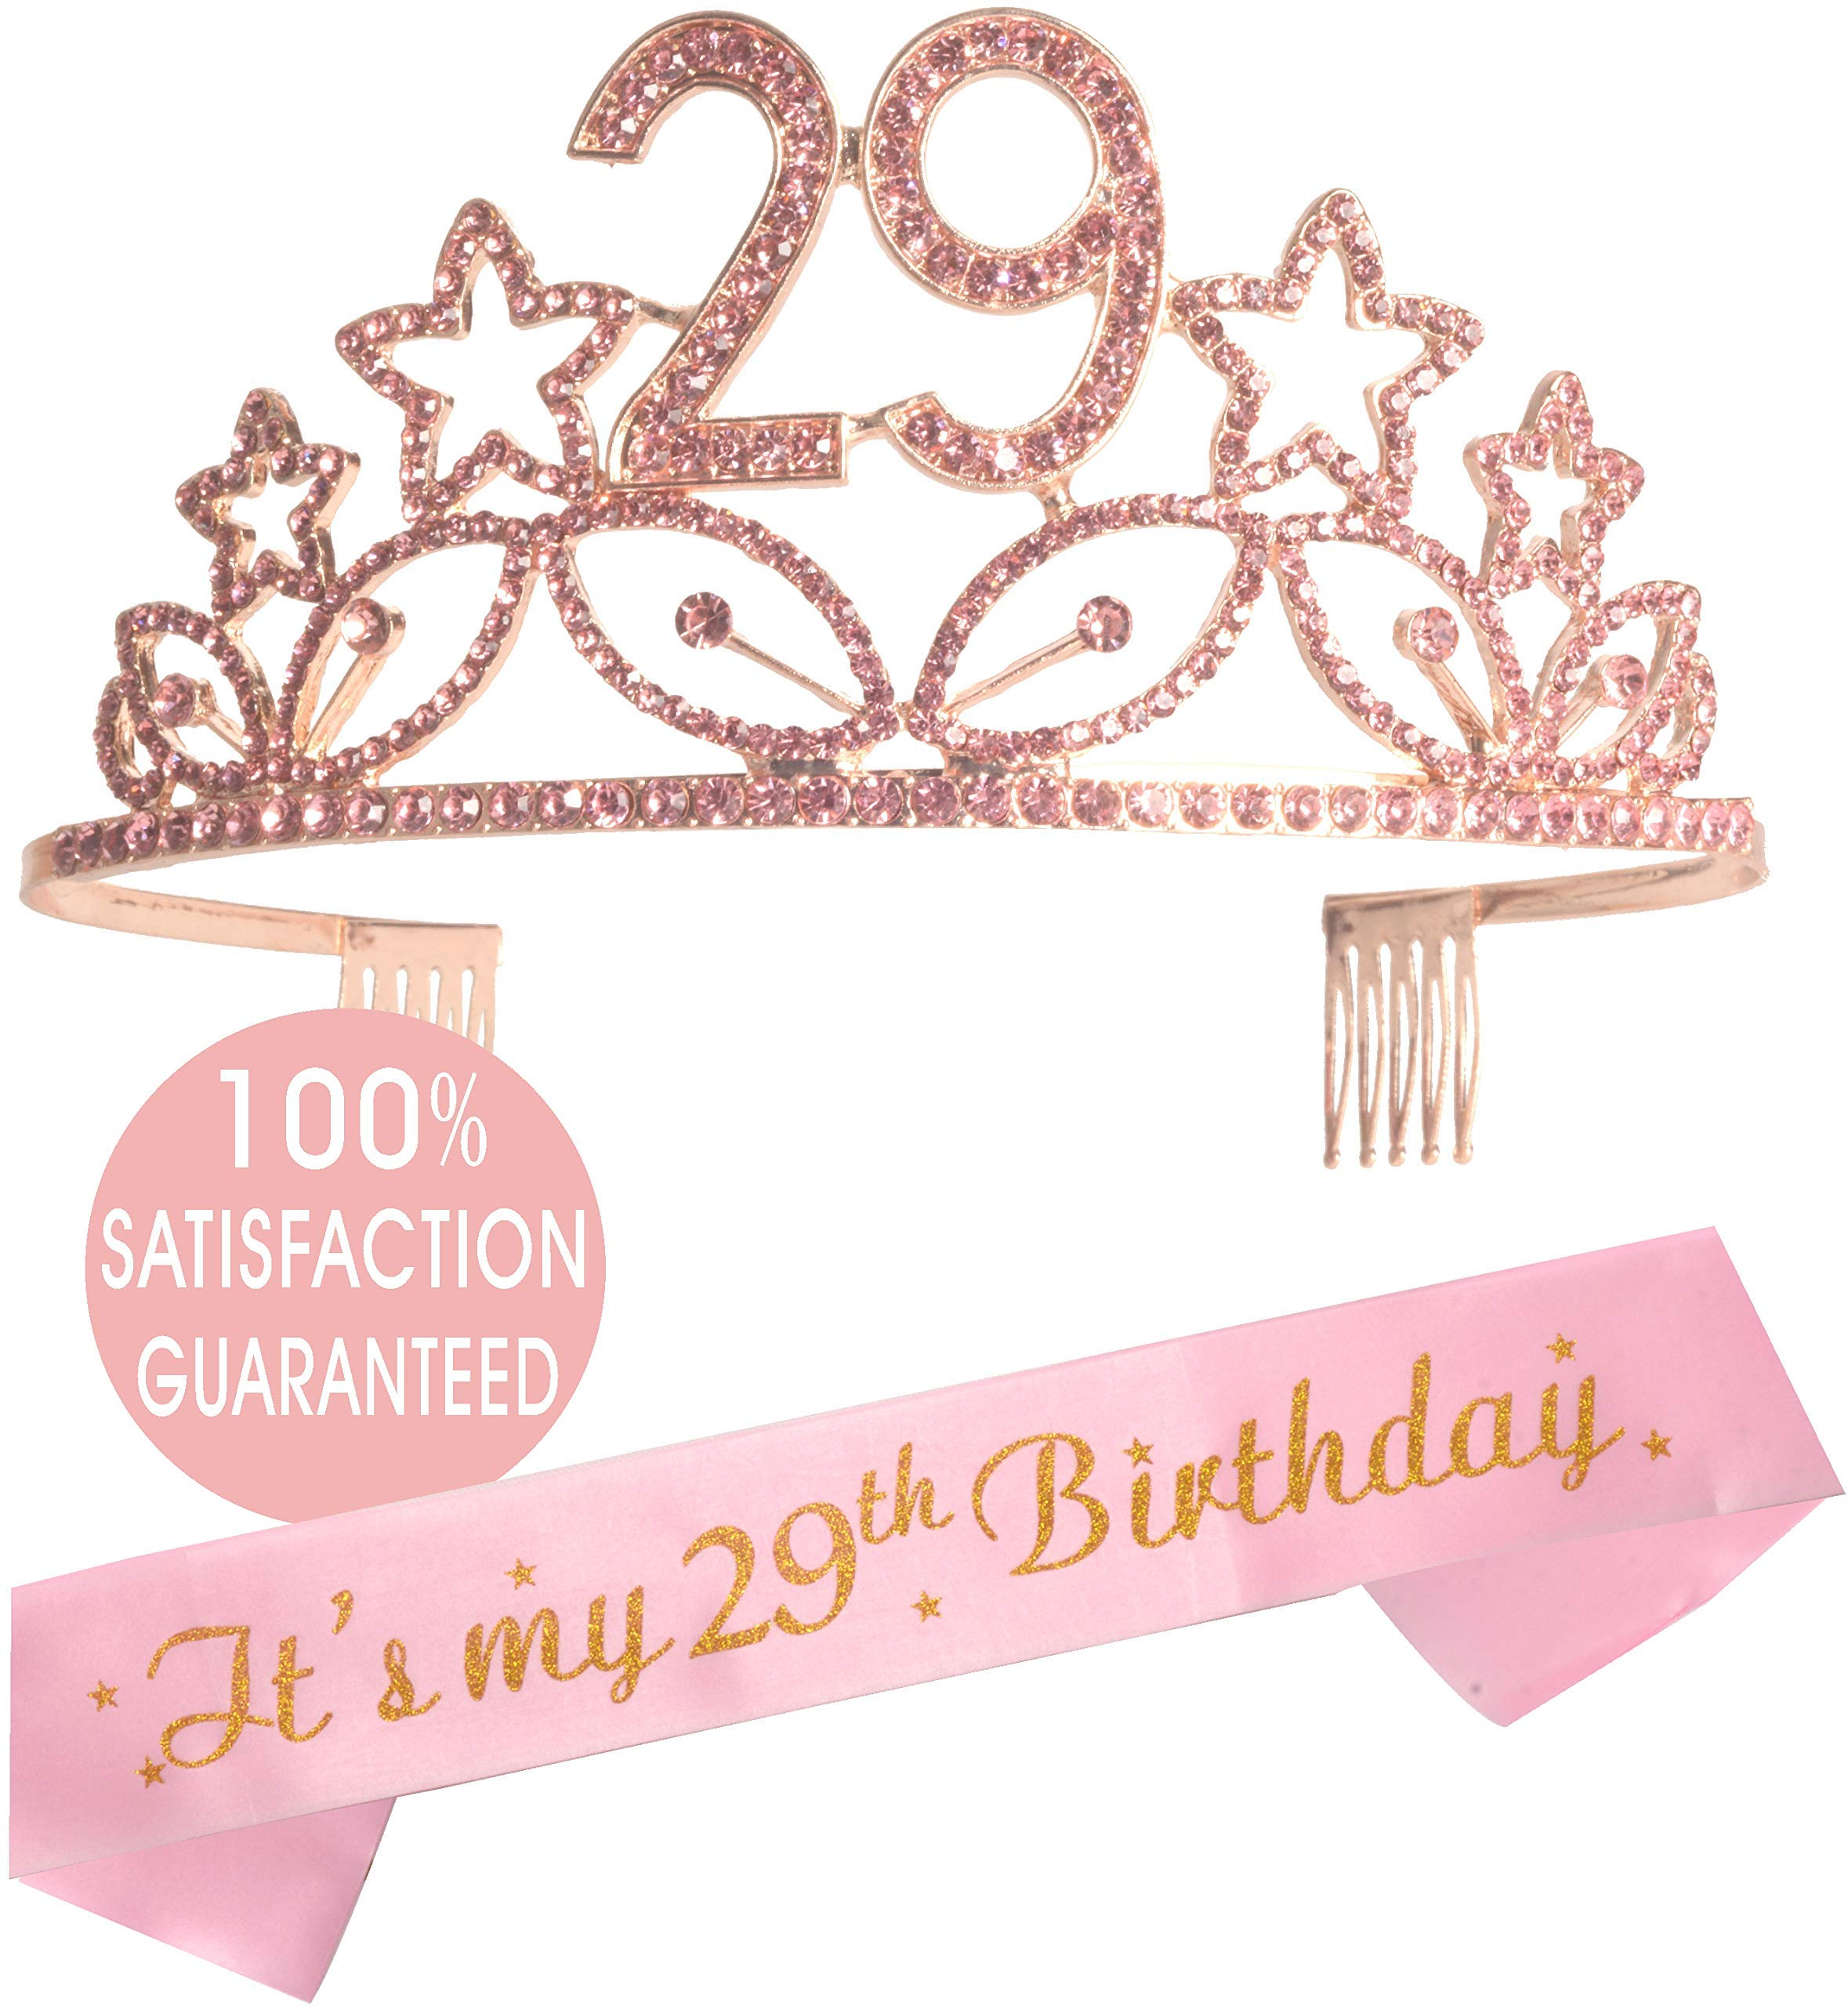 29th Birthday Tiara and Sash, Happy 29th Birthday Party Supplies, It's my 29th birthday Black Glitter Satin Sash and Crystal Tiara Birthday Crown for 29th Birthday Party Supplies and Decorations (Tiar